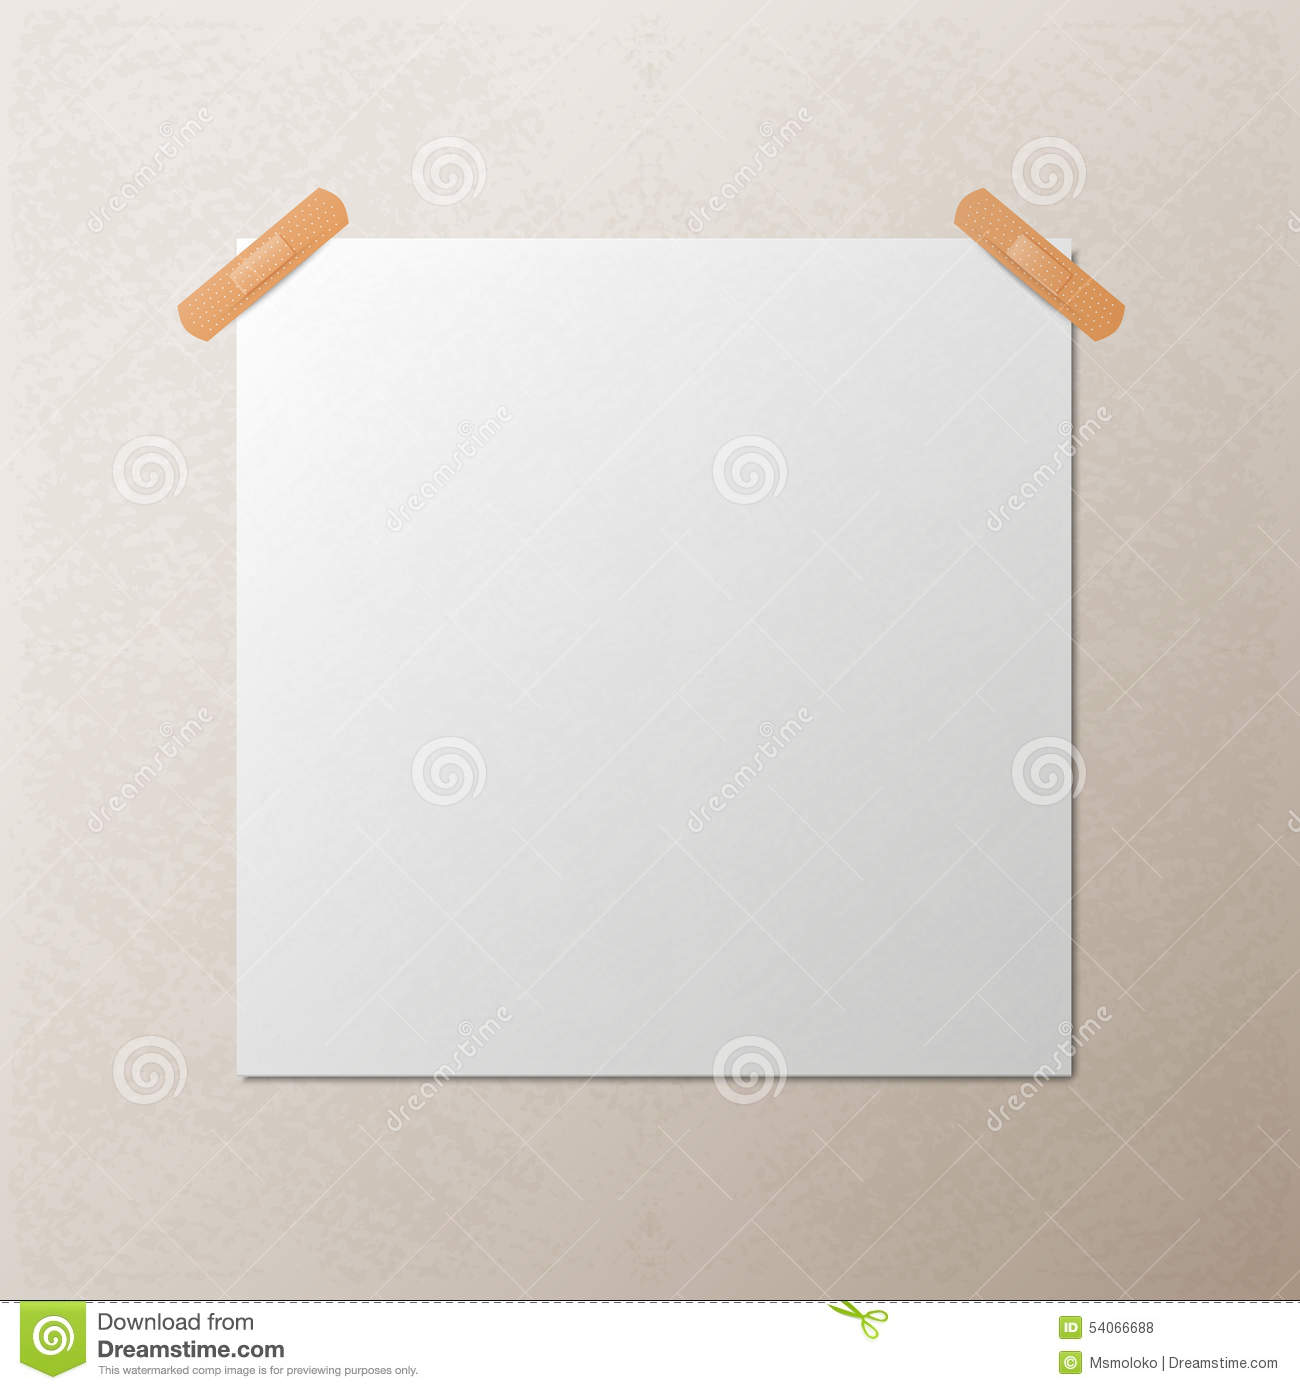 white piece of paper Hi all, here is a question that has bothered me for quite a long time should i say 'a white piece of paper' or 'a piece of white paper' are both expressions correct but having different.